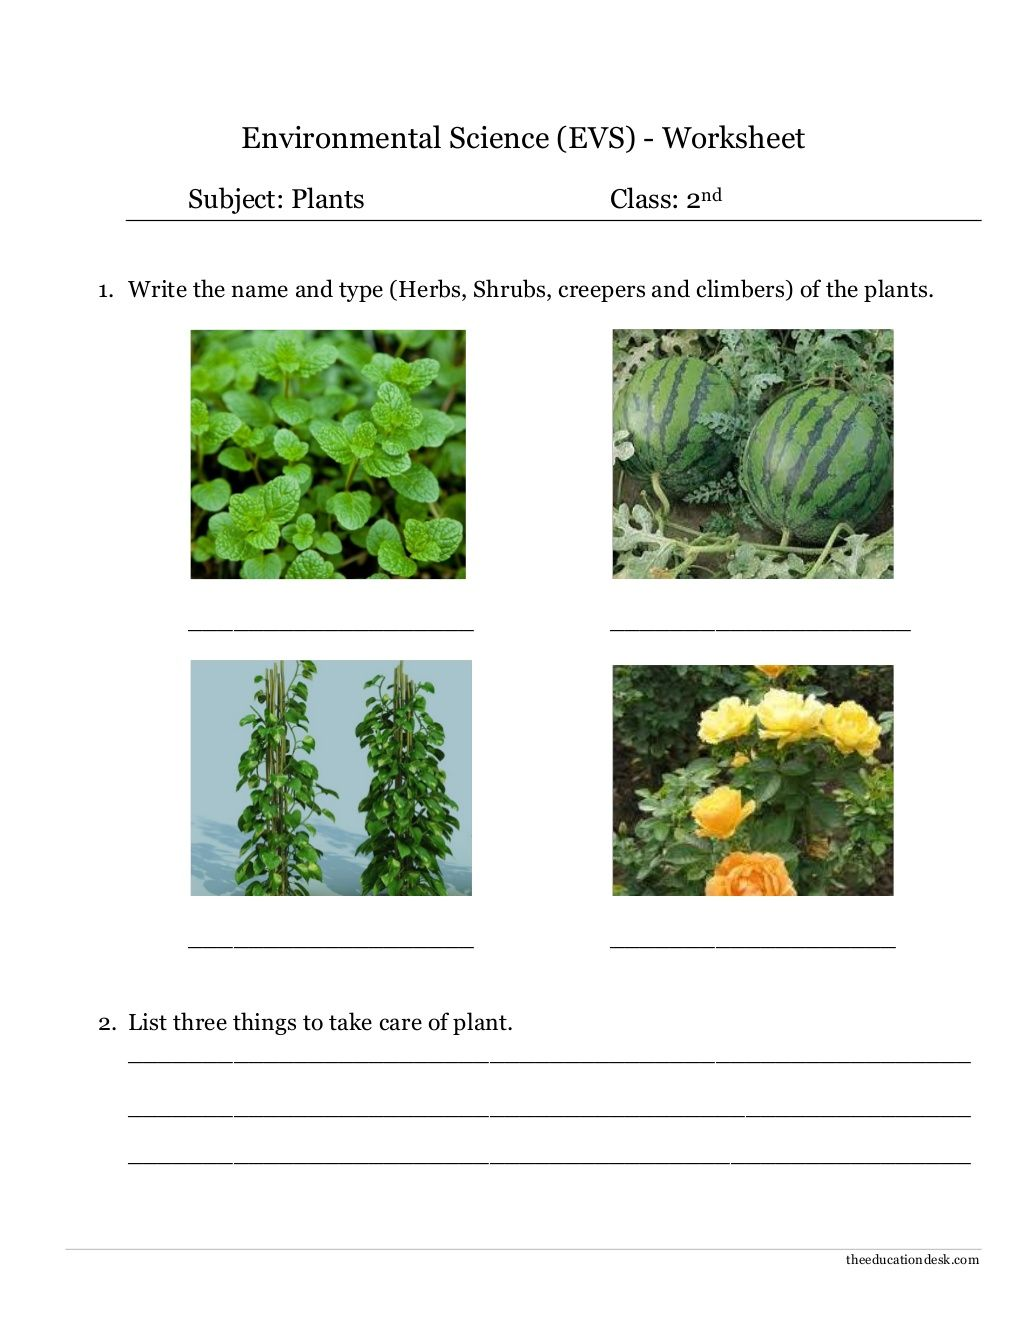 Environmental Science Evs Plants Worksheet Class Ii By Theeducationdesk Via Slideshare